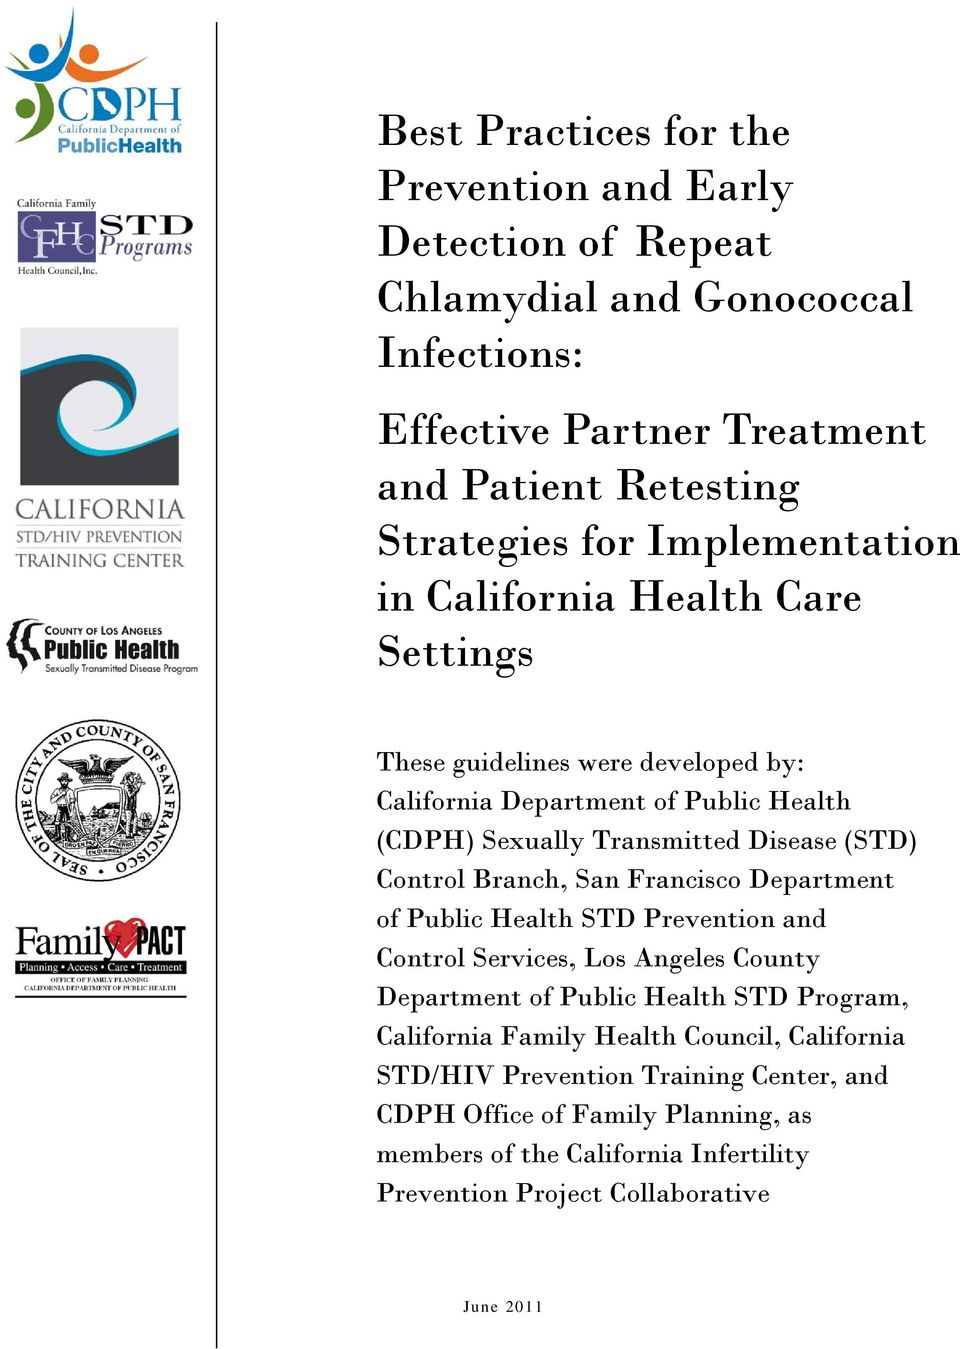 Control Branch, San Francisco Department of Public Health STD Prevention and Control Services, Los Angeles County Department of Public Health STD Program, California Family